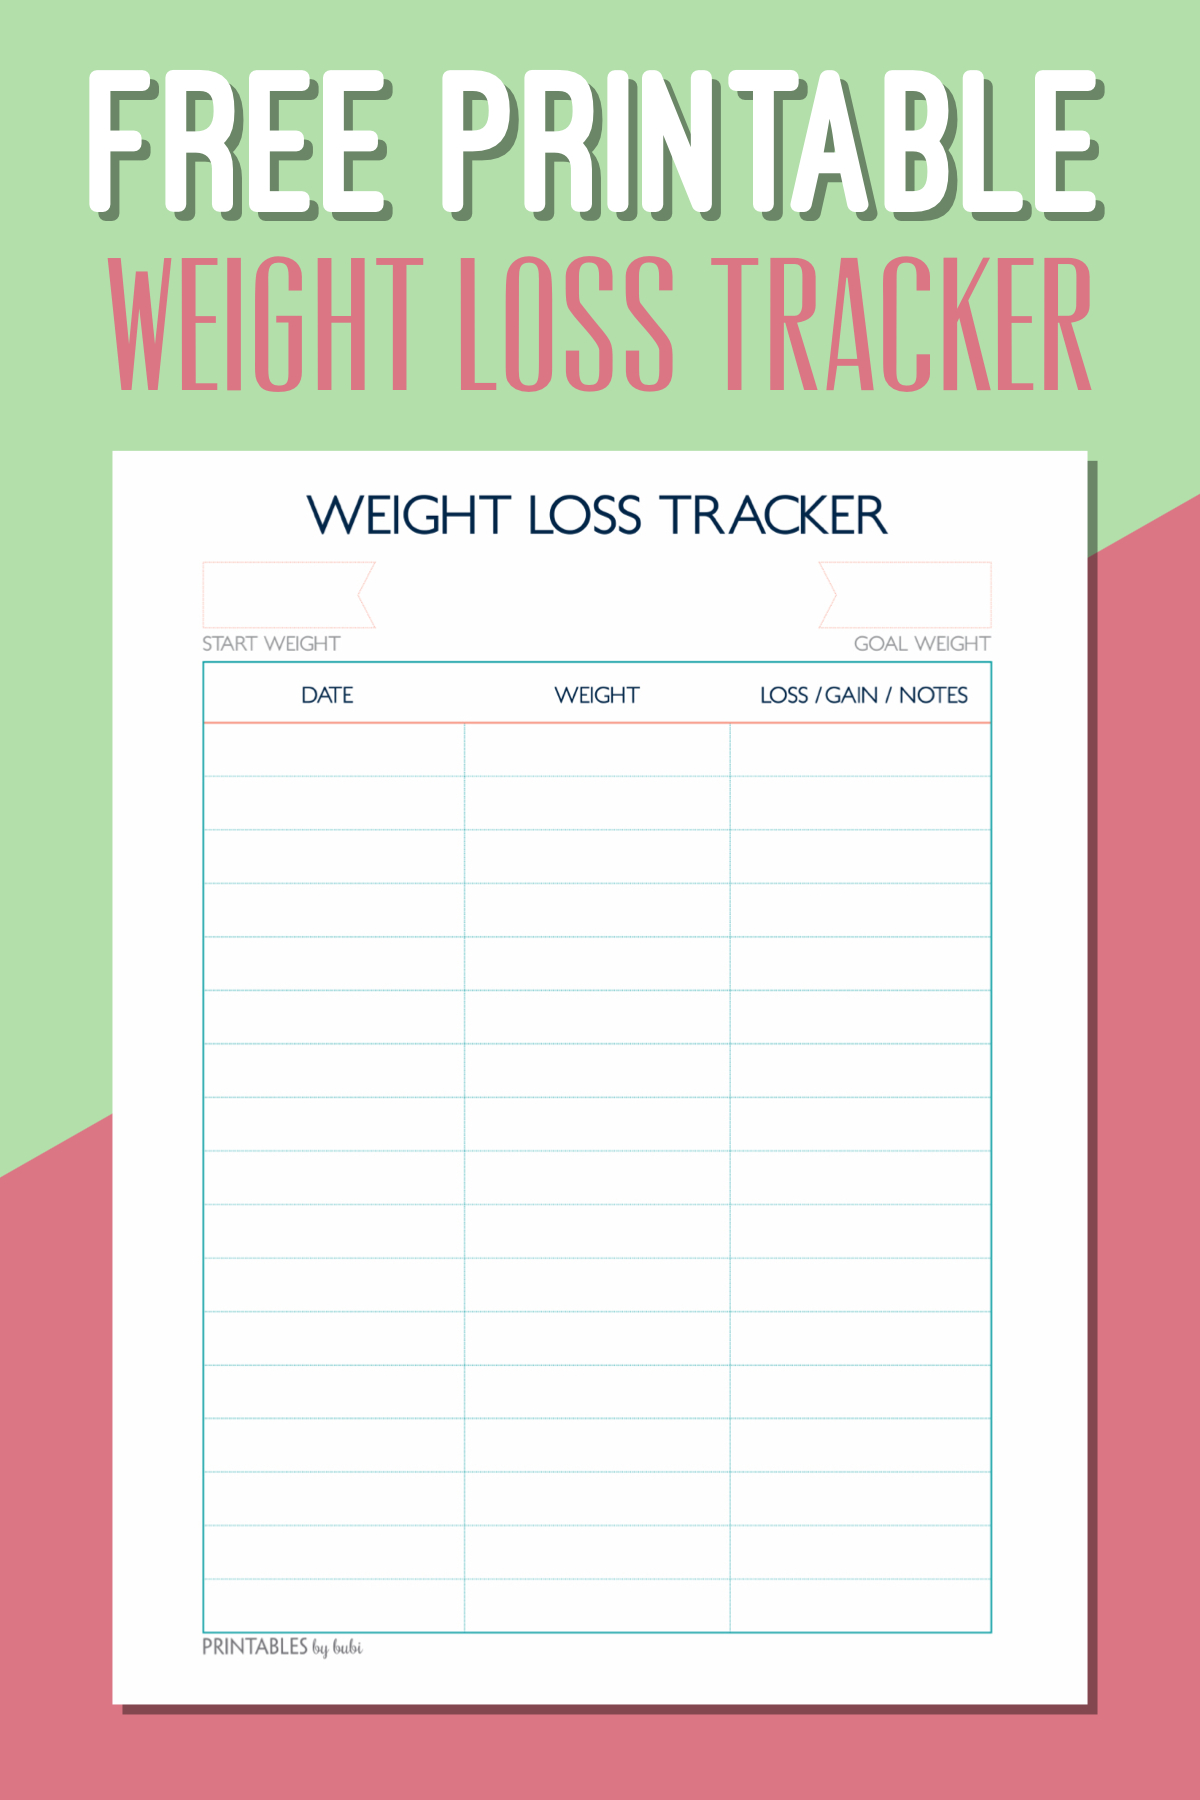 Free Printable Weight Loss Tracker – Instant Download Pdf - Free Printable Weight Loss Tracker Chart